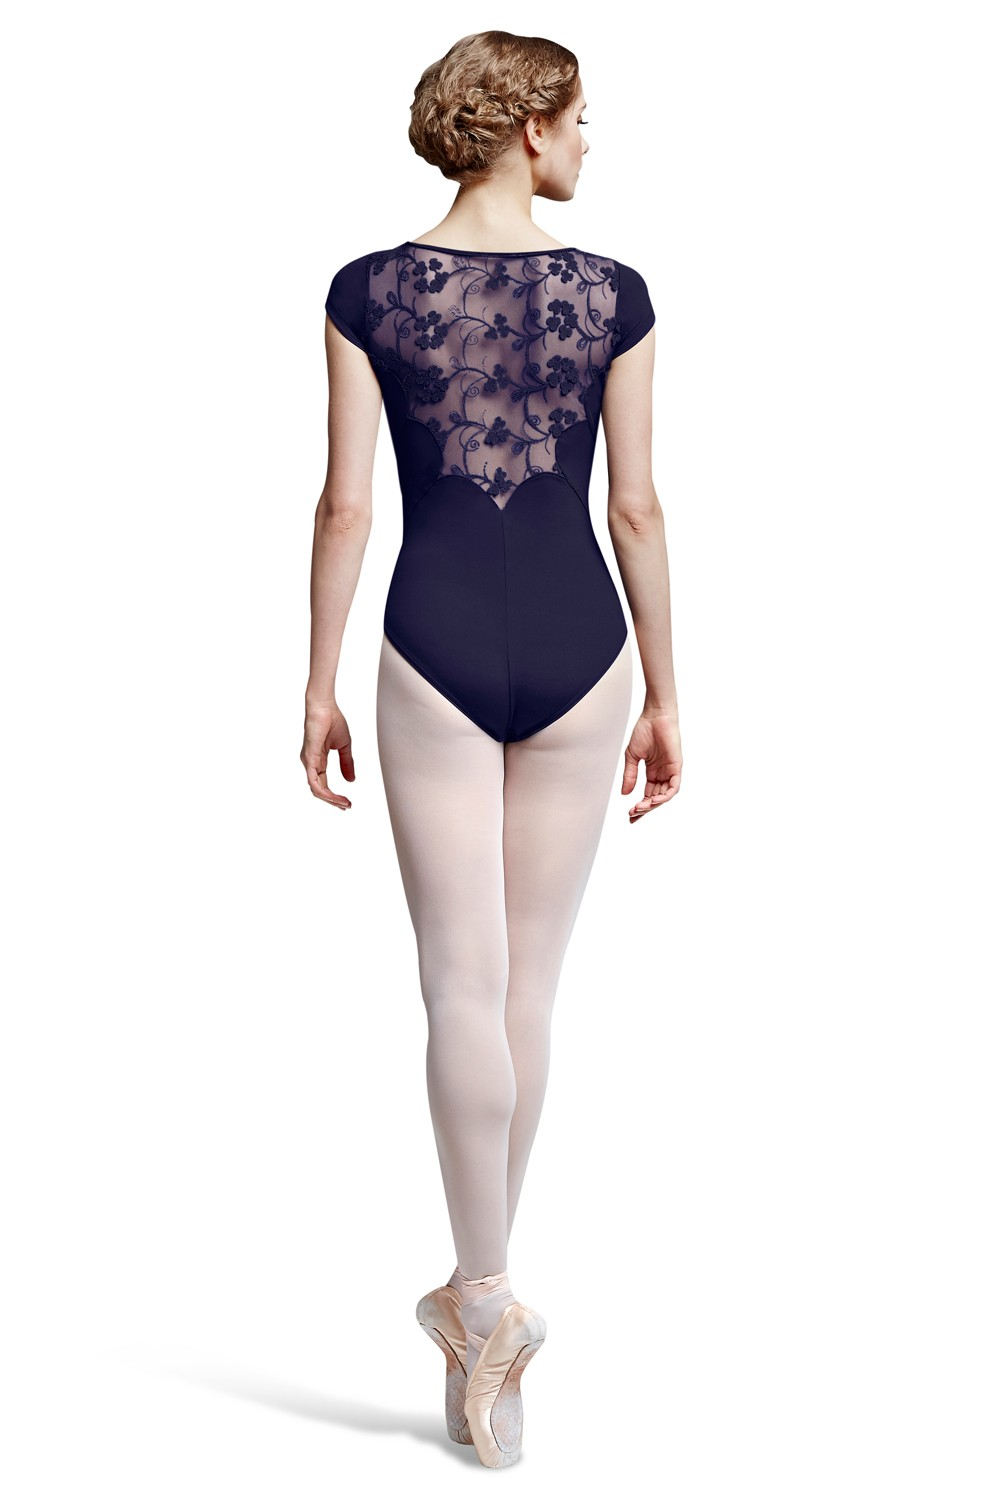 Wattle Women's Dance Leotards